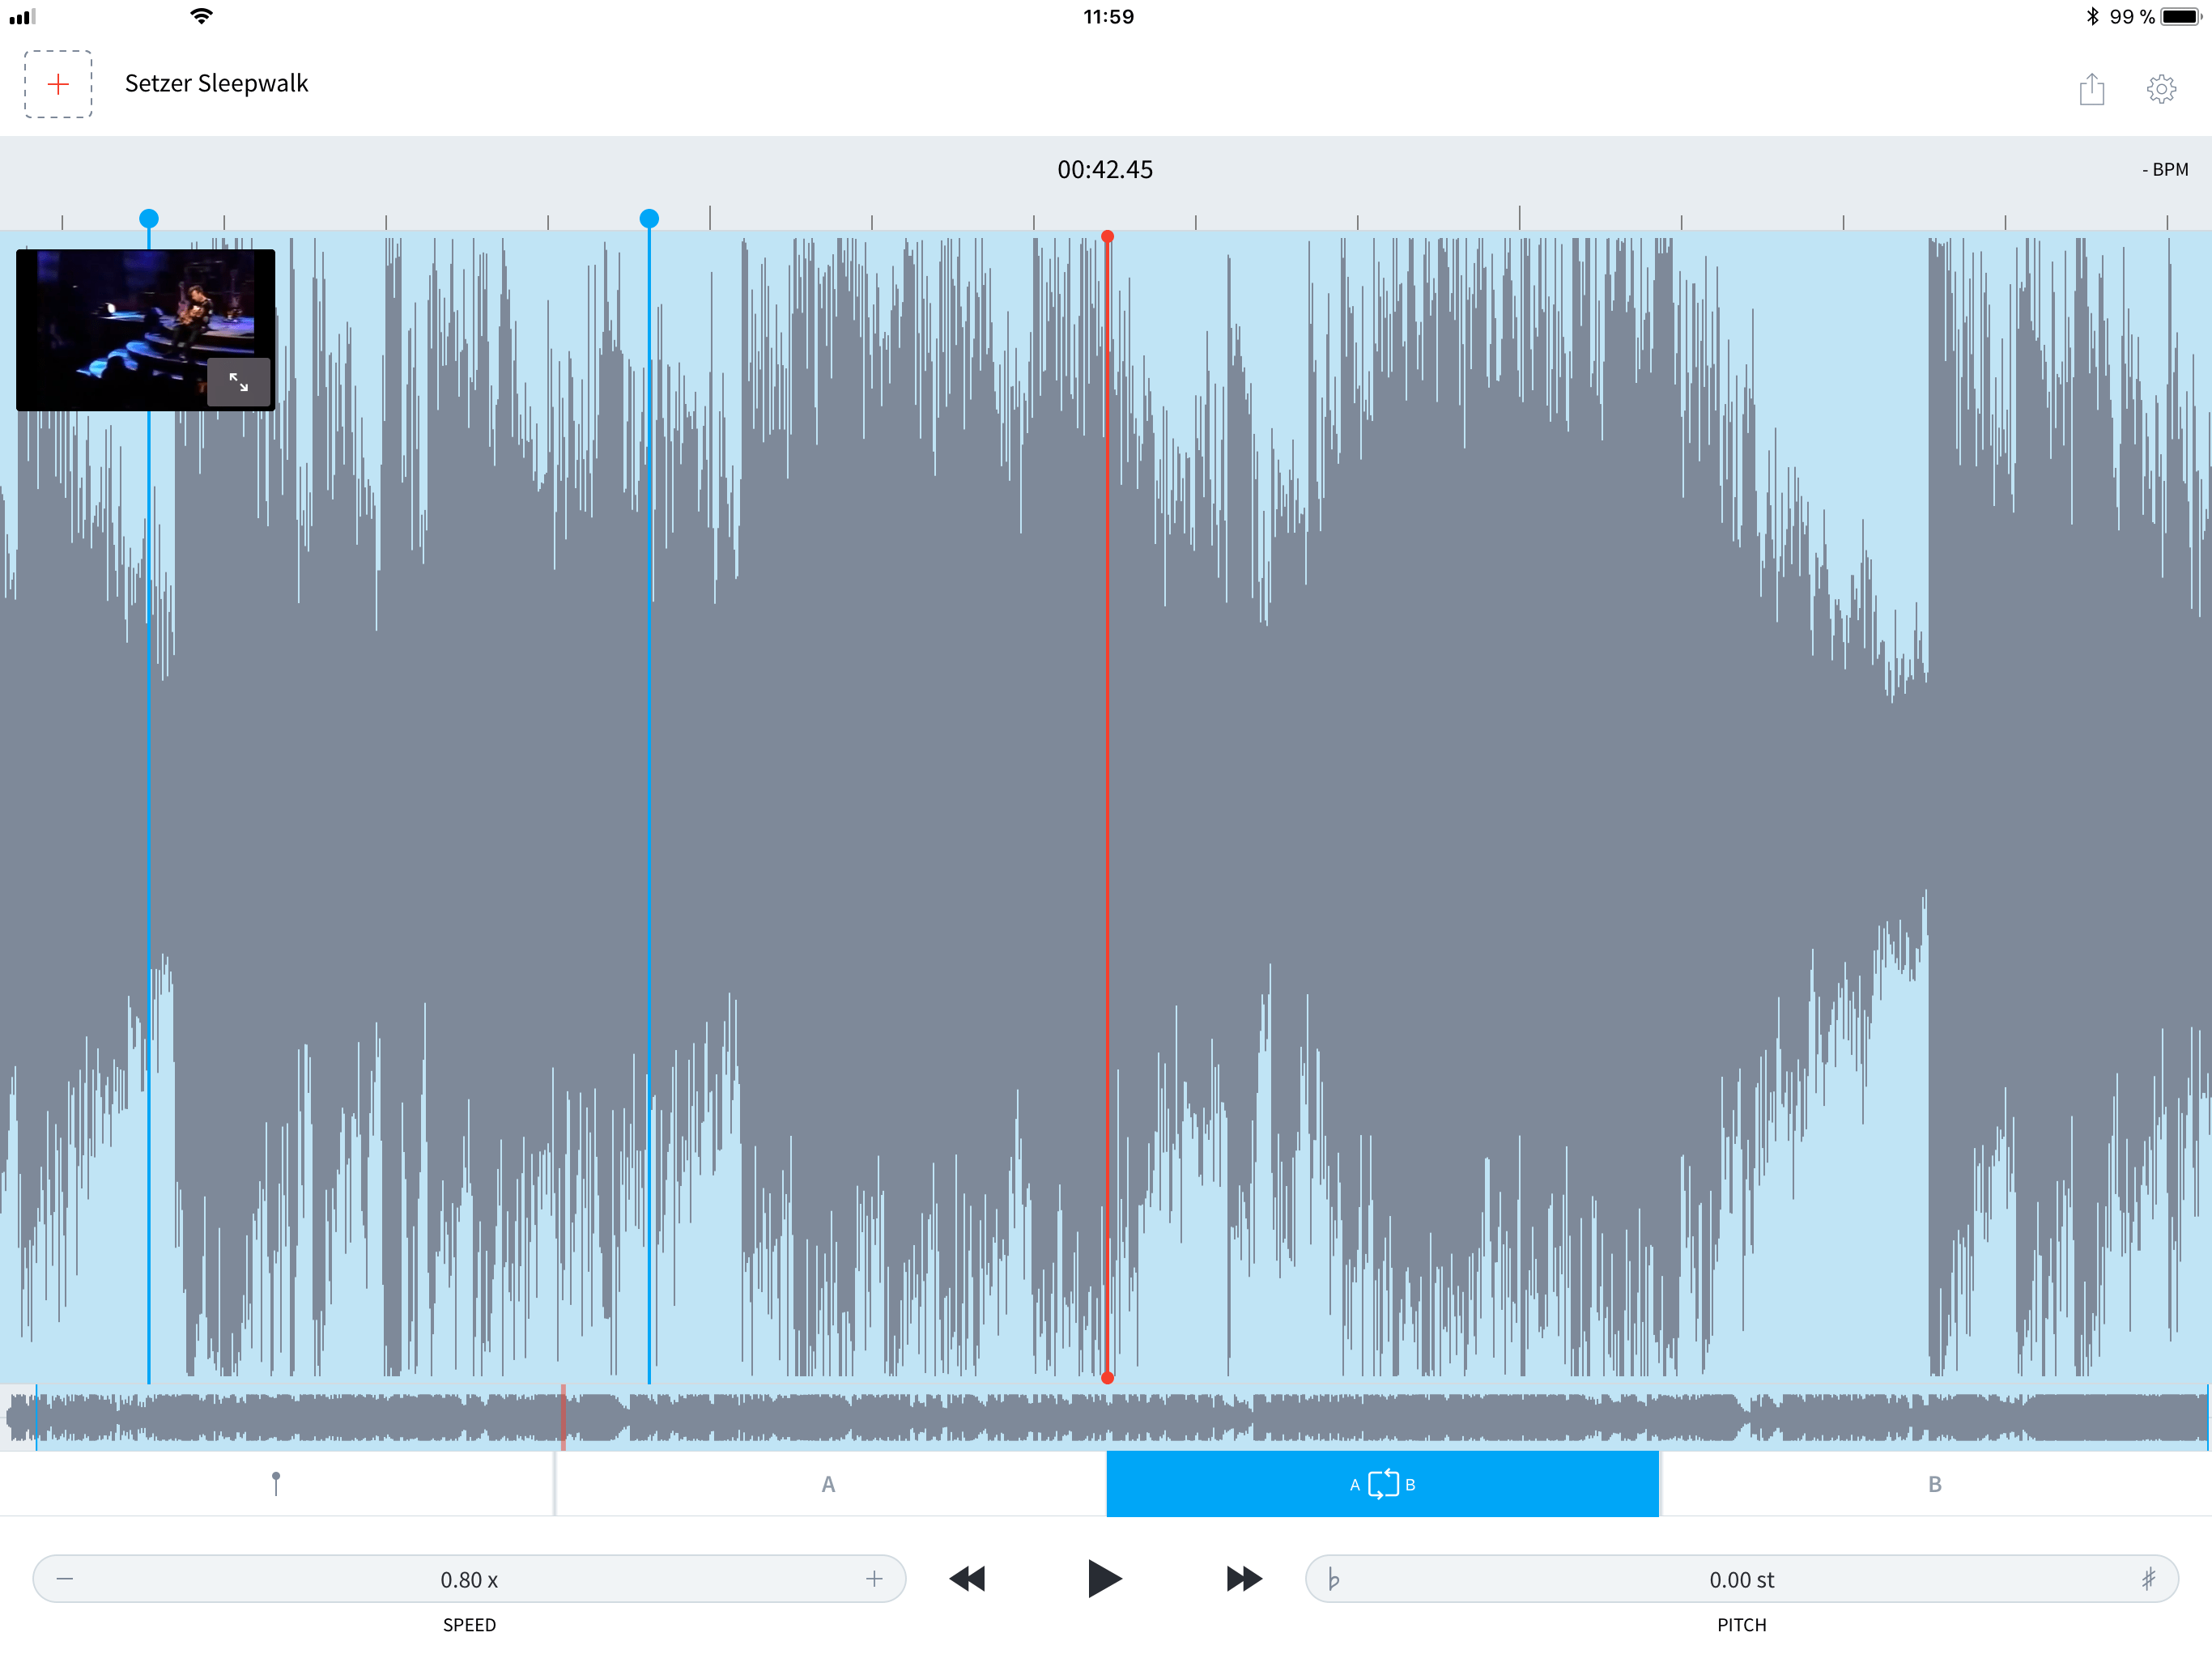 AudioStretch slows down songs and videos to make learning